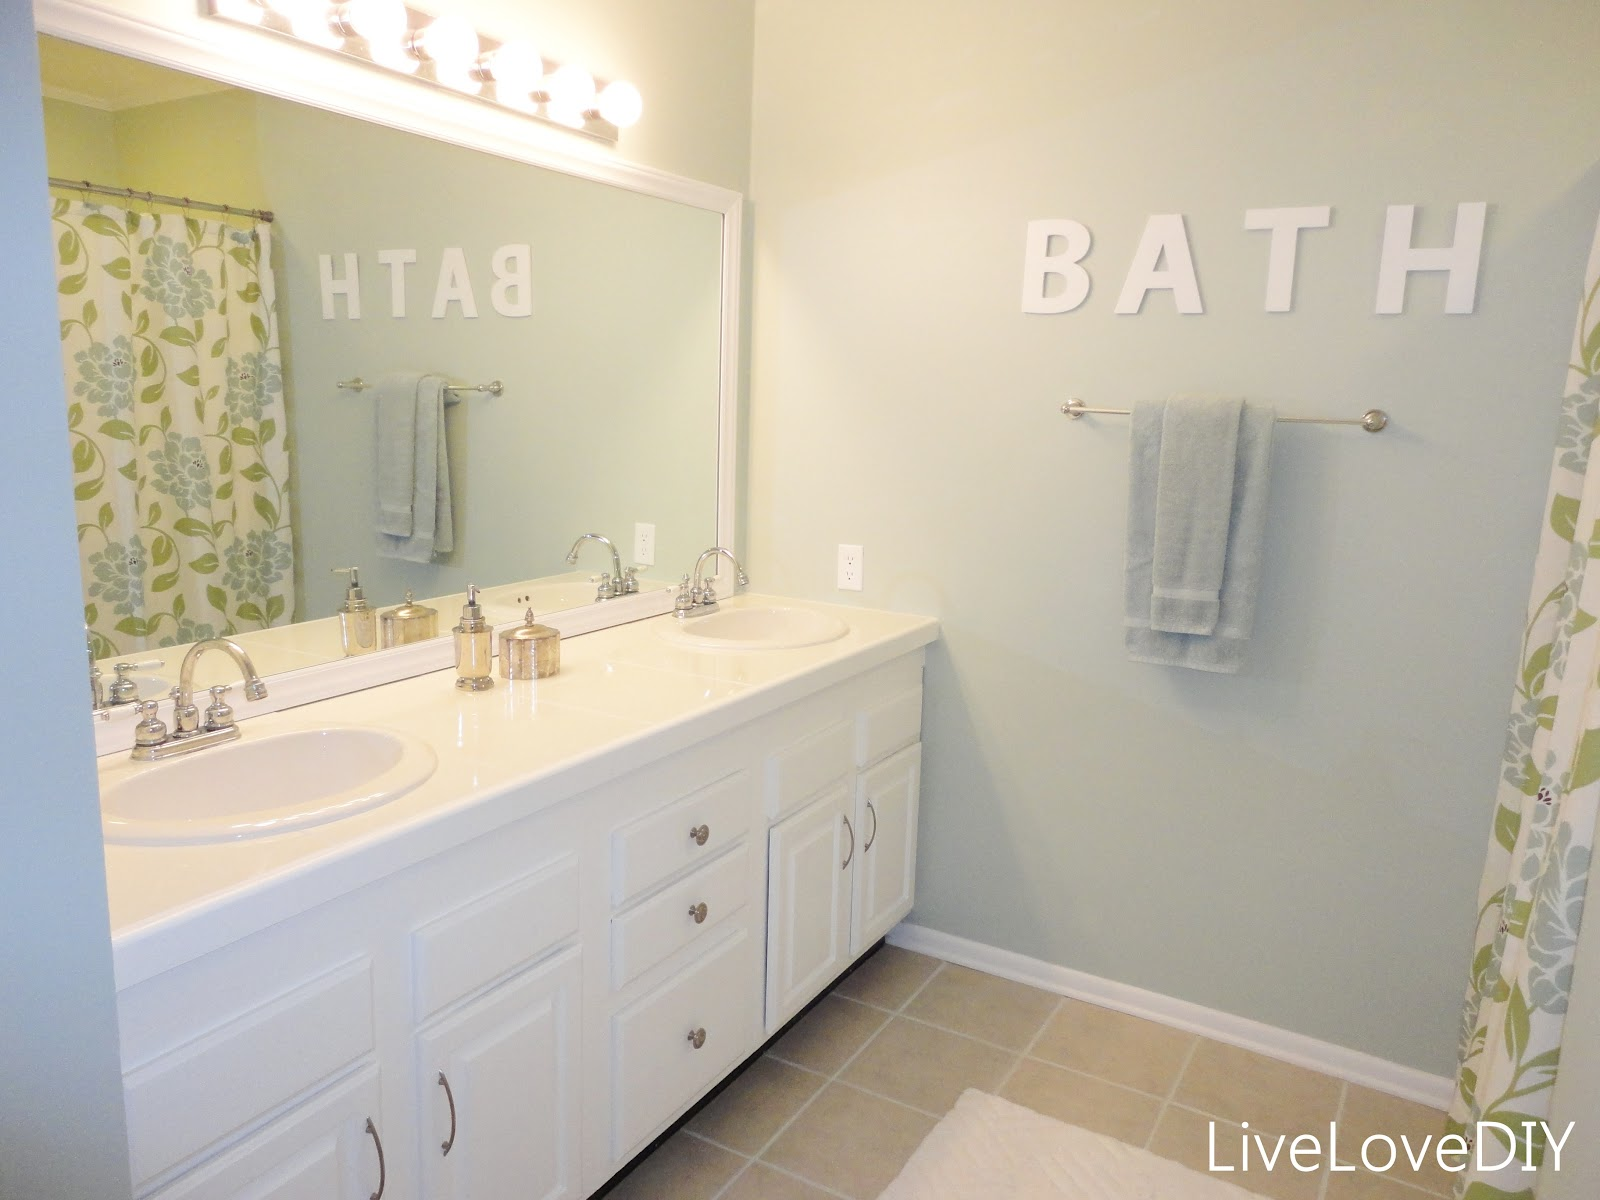 LiveLoveDIY Easy DIY Ideas For Updating Your Bathroom - What color should i paint my bathroom